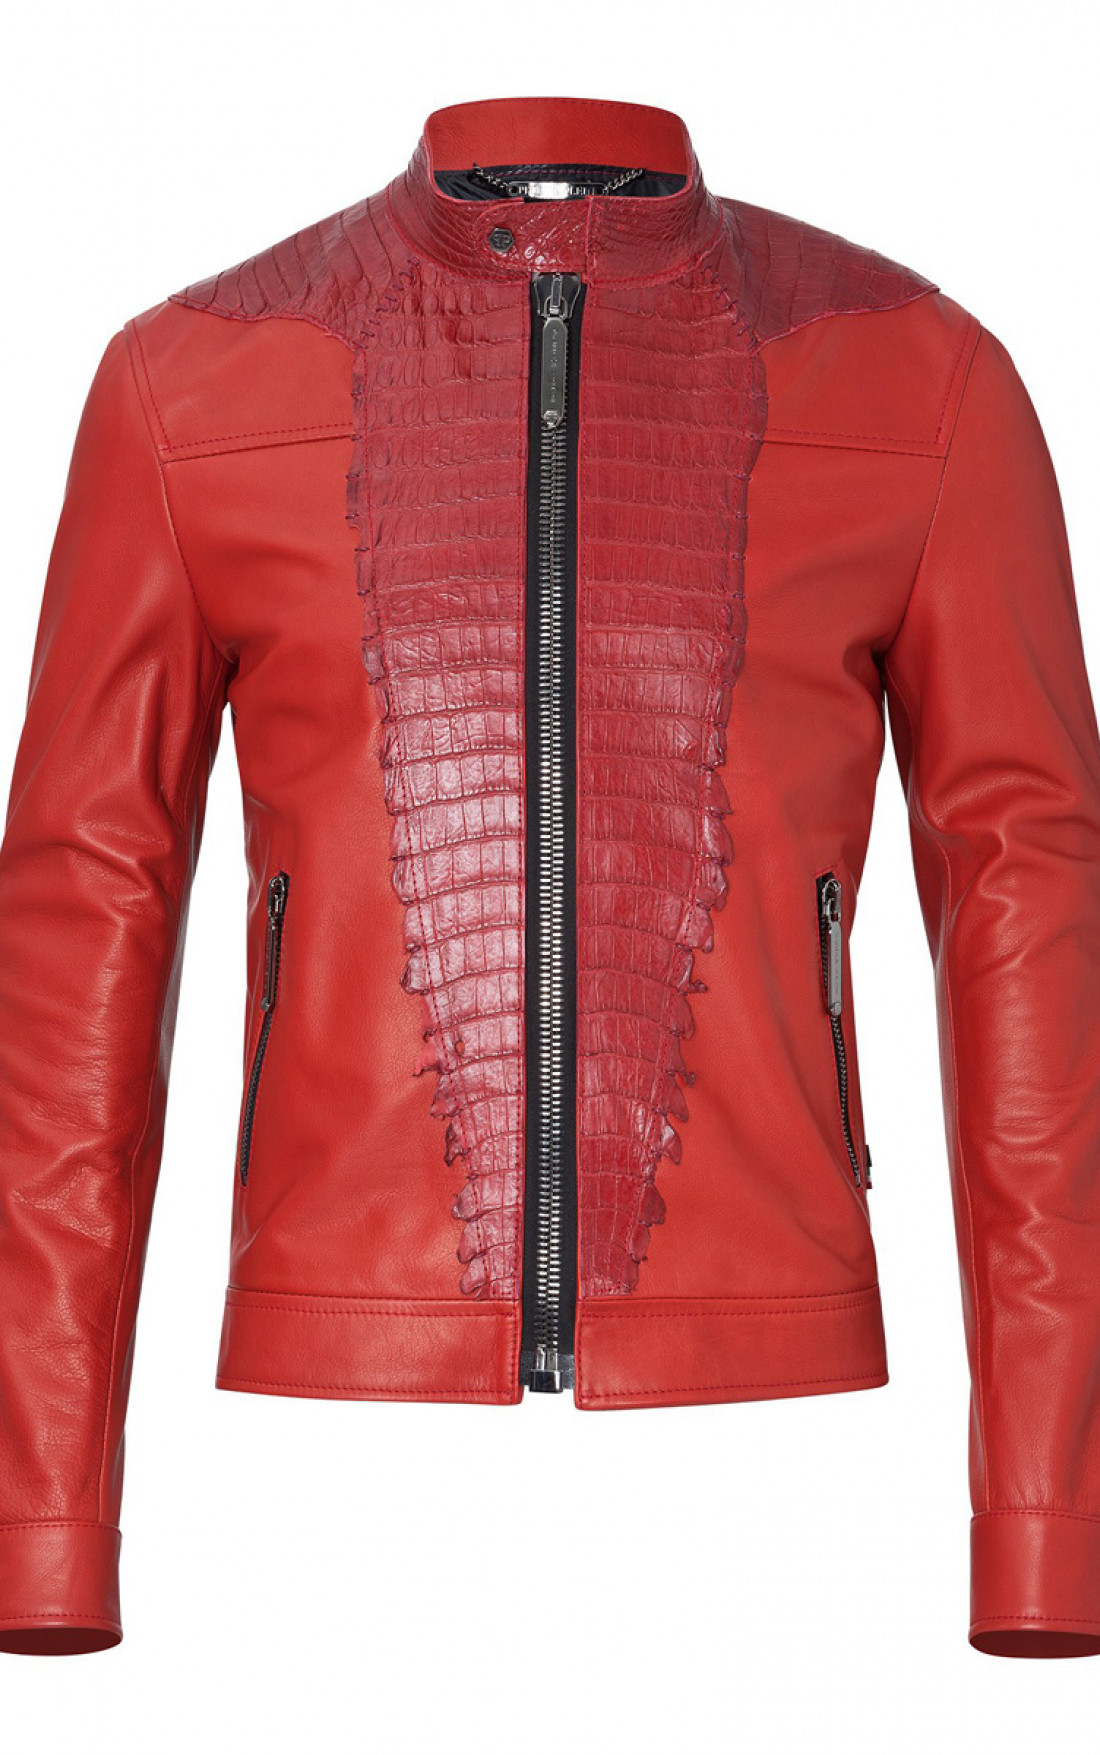 3073725a10f7 Philipp Plein - Distinct Red Leather Jacket